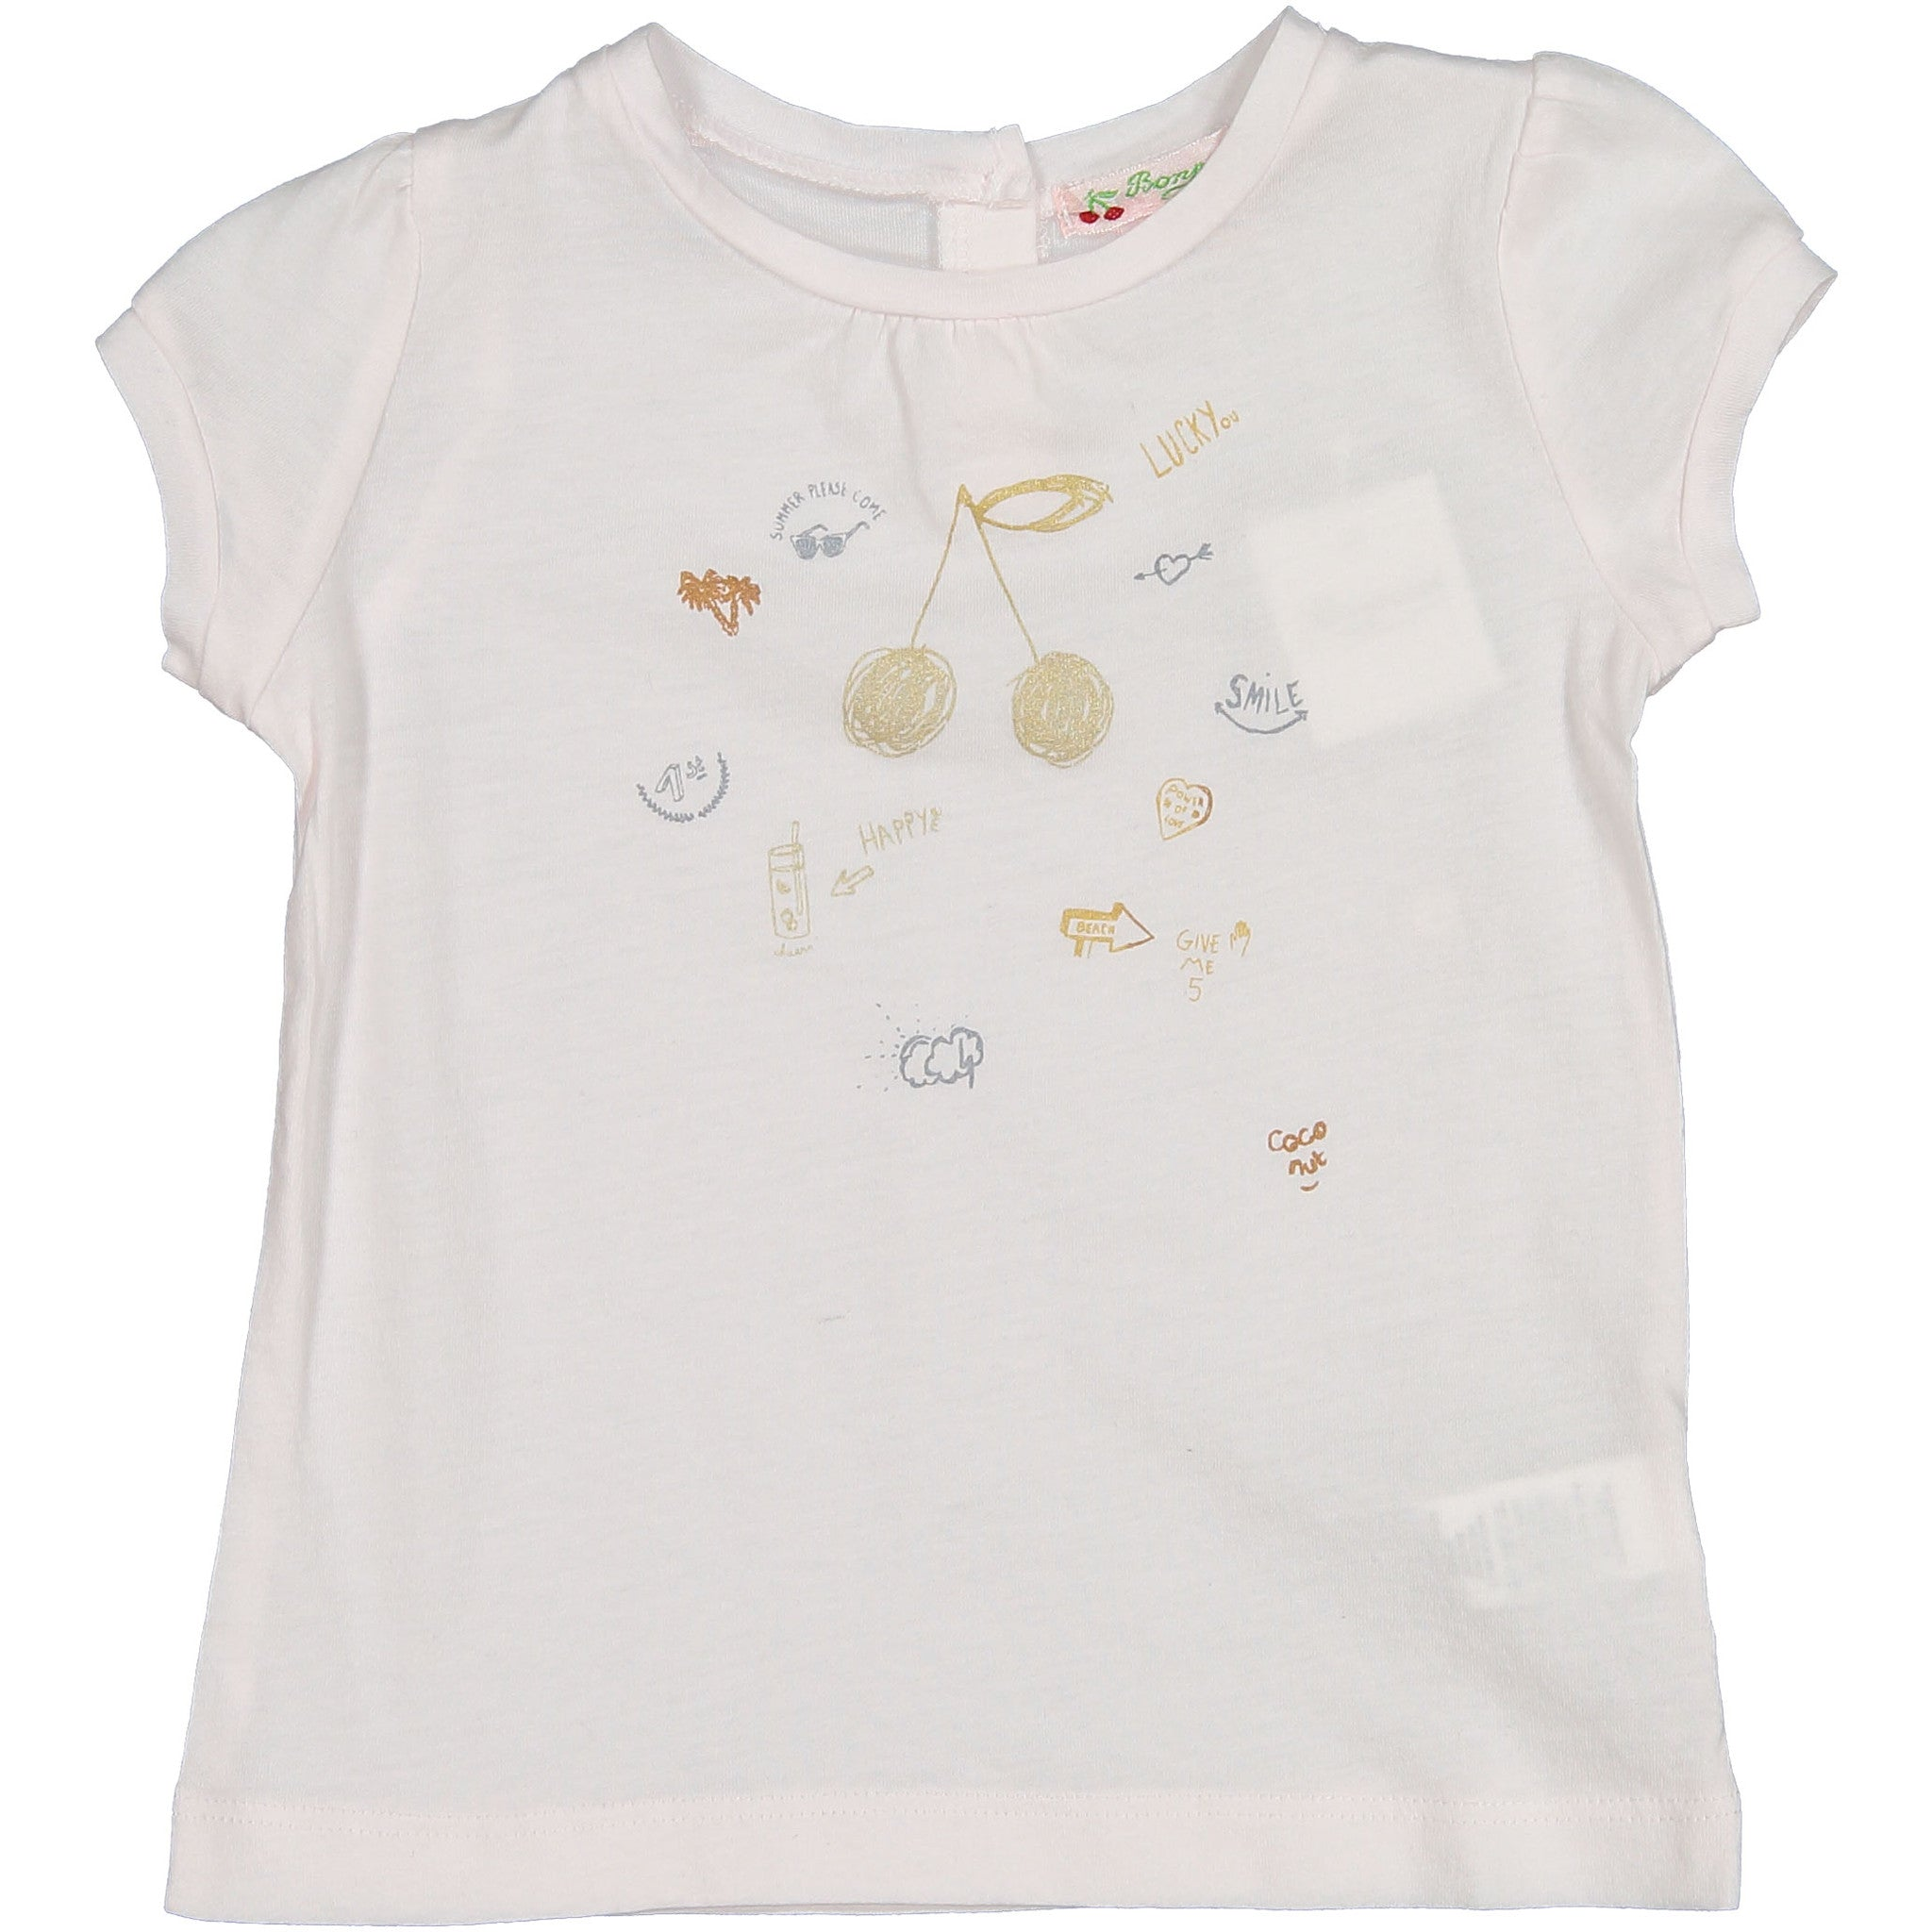 Bonpoint Rose Applique Baby Tee - Ladida